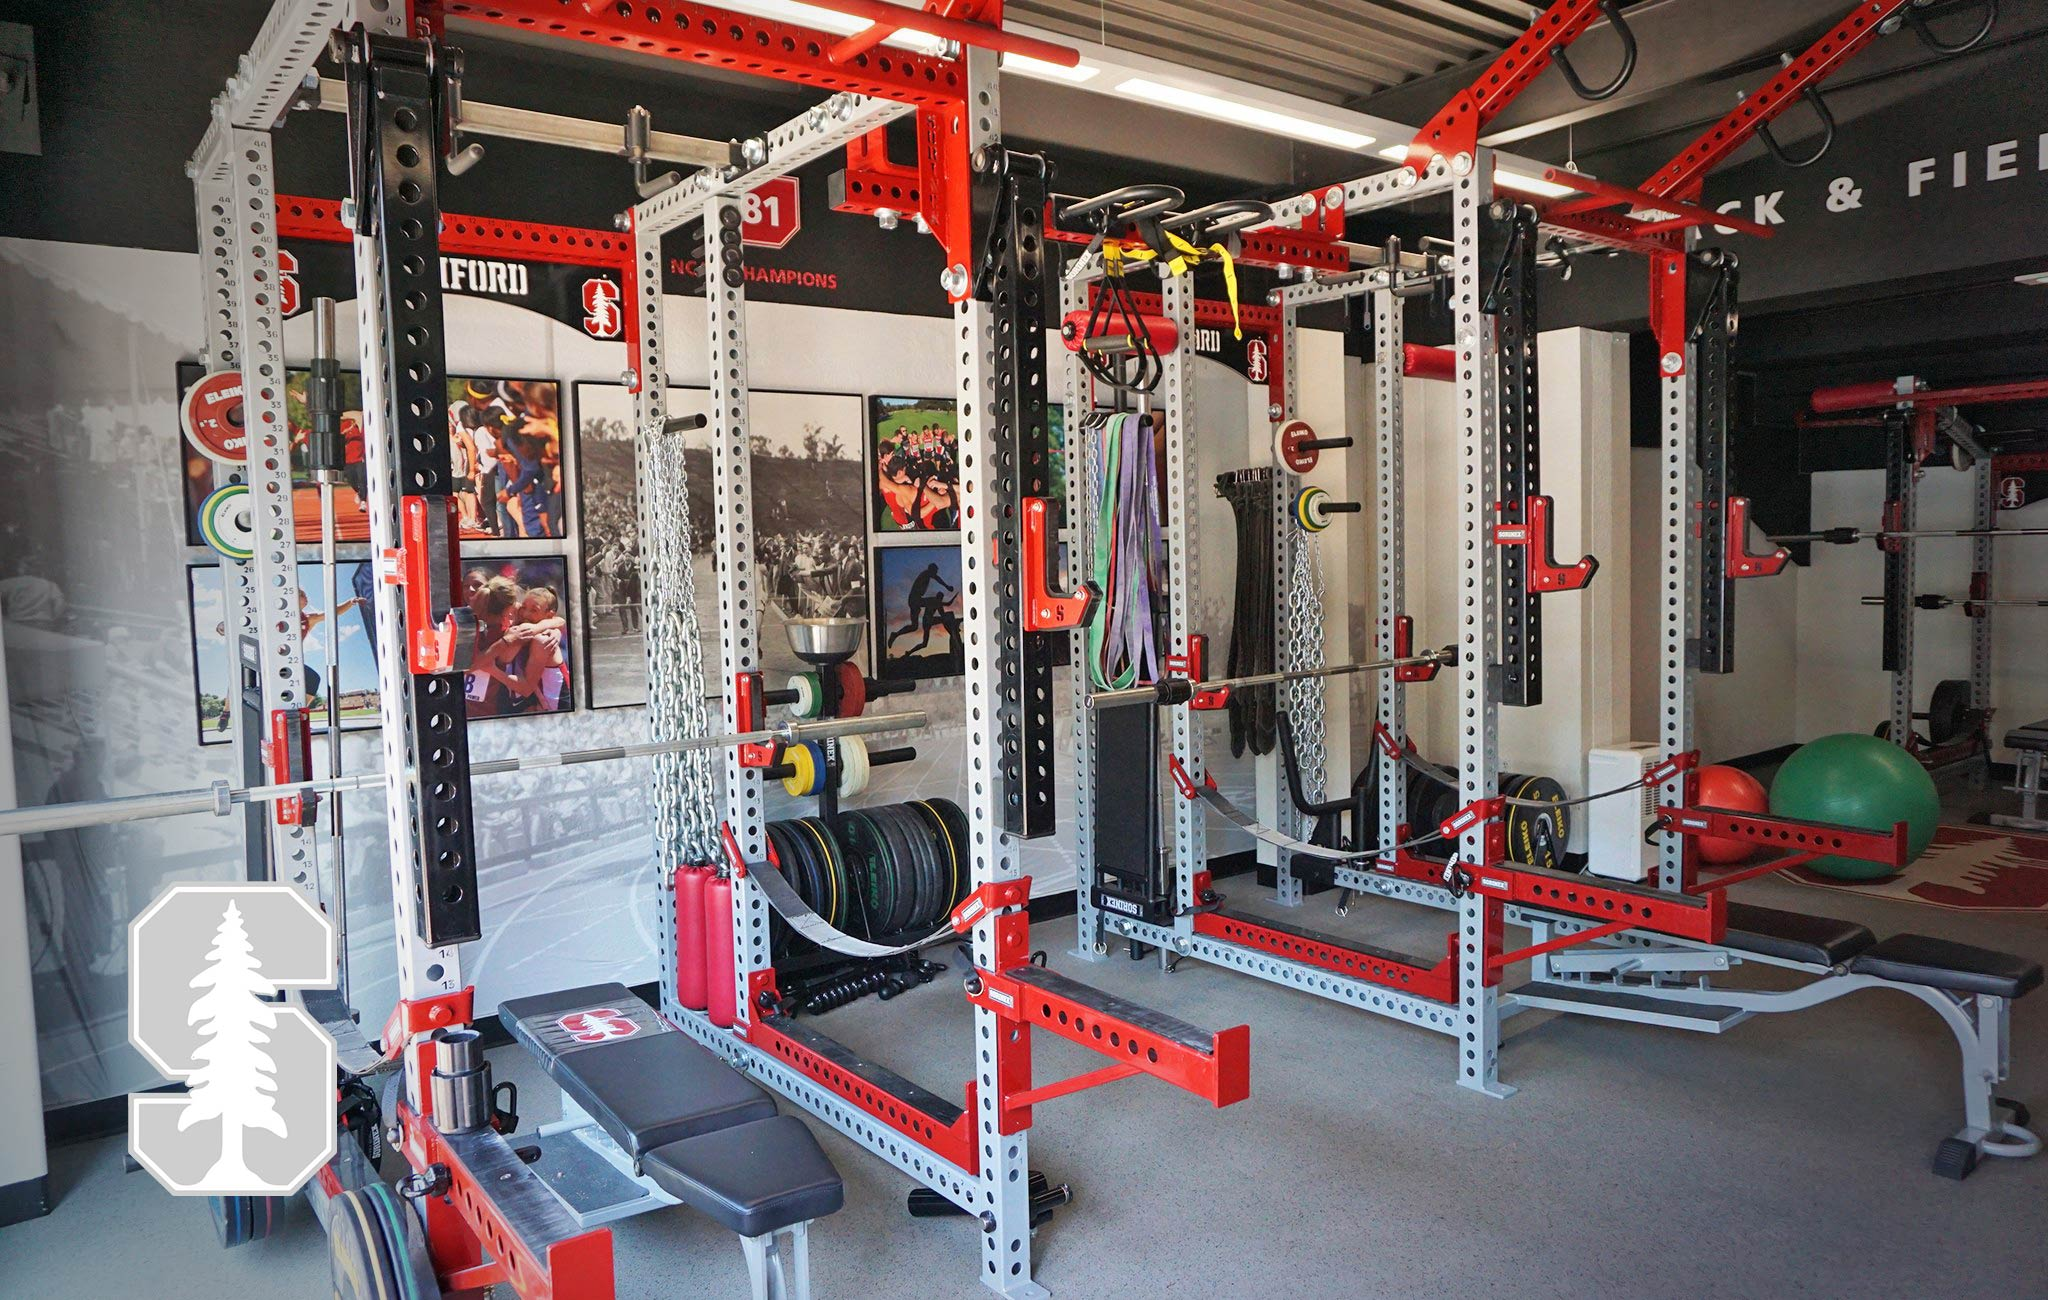 Standford University Sorinex strength and conditioning facility